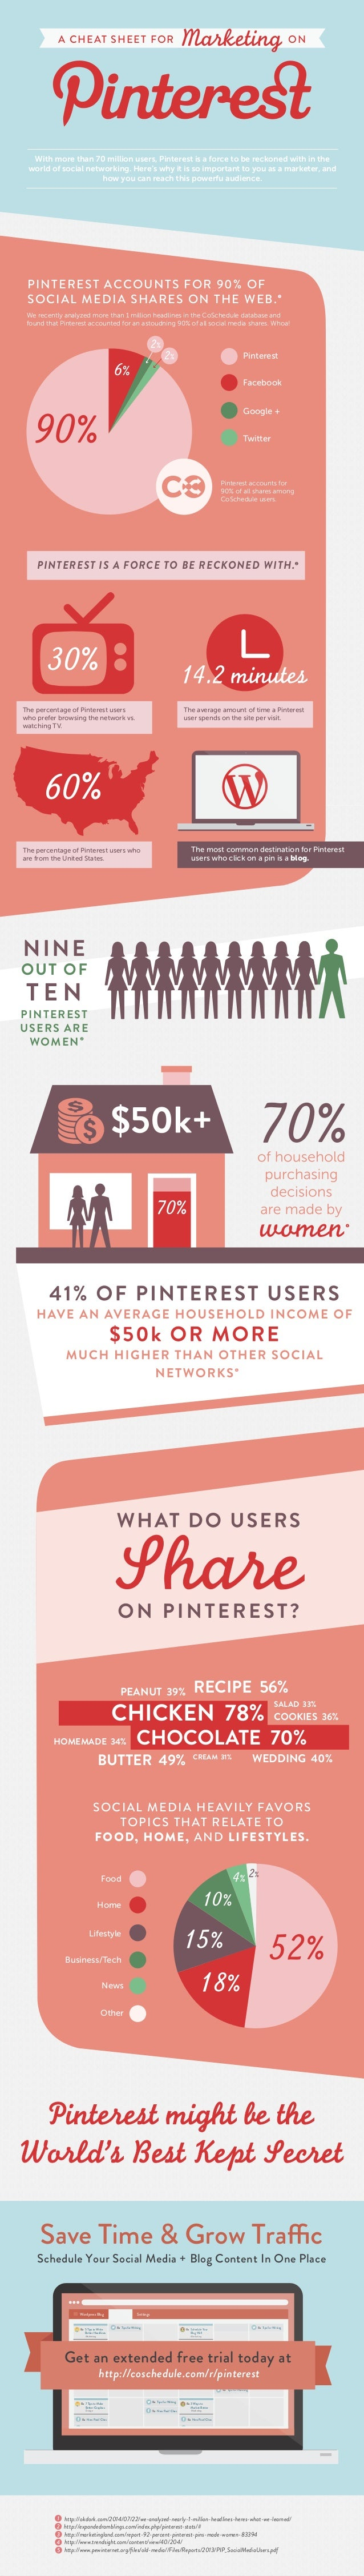 A Cheat Sheet For Marketing With Pinterest [Infographic]